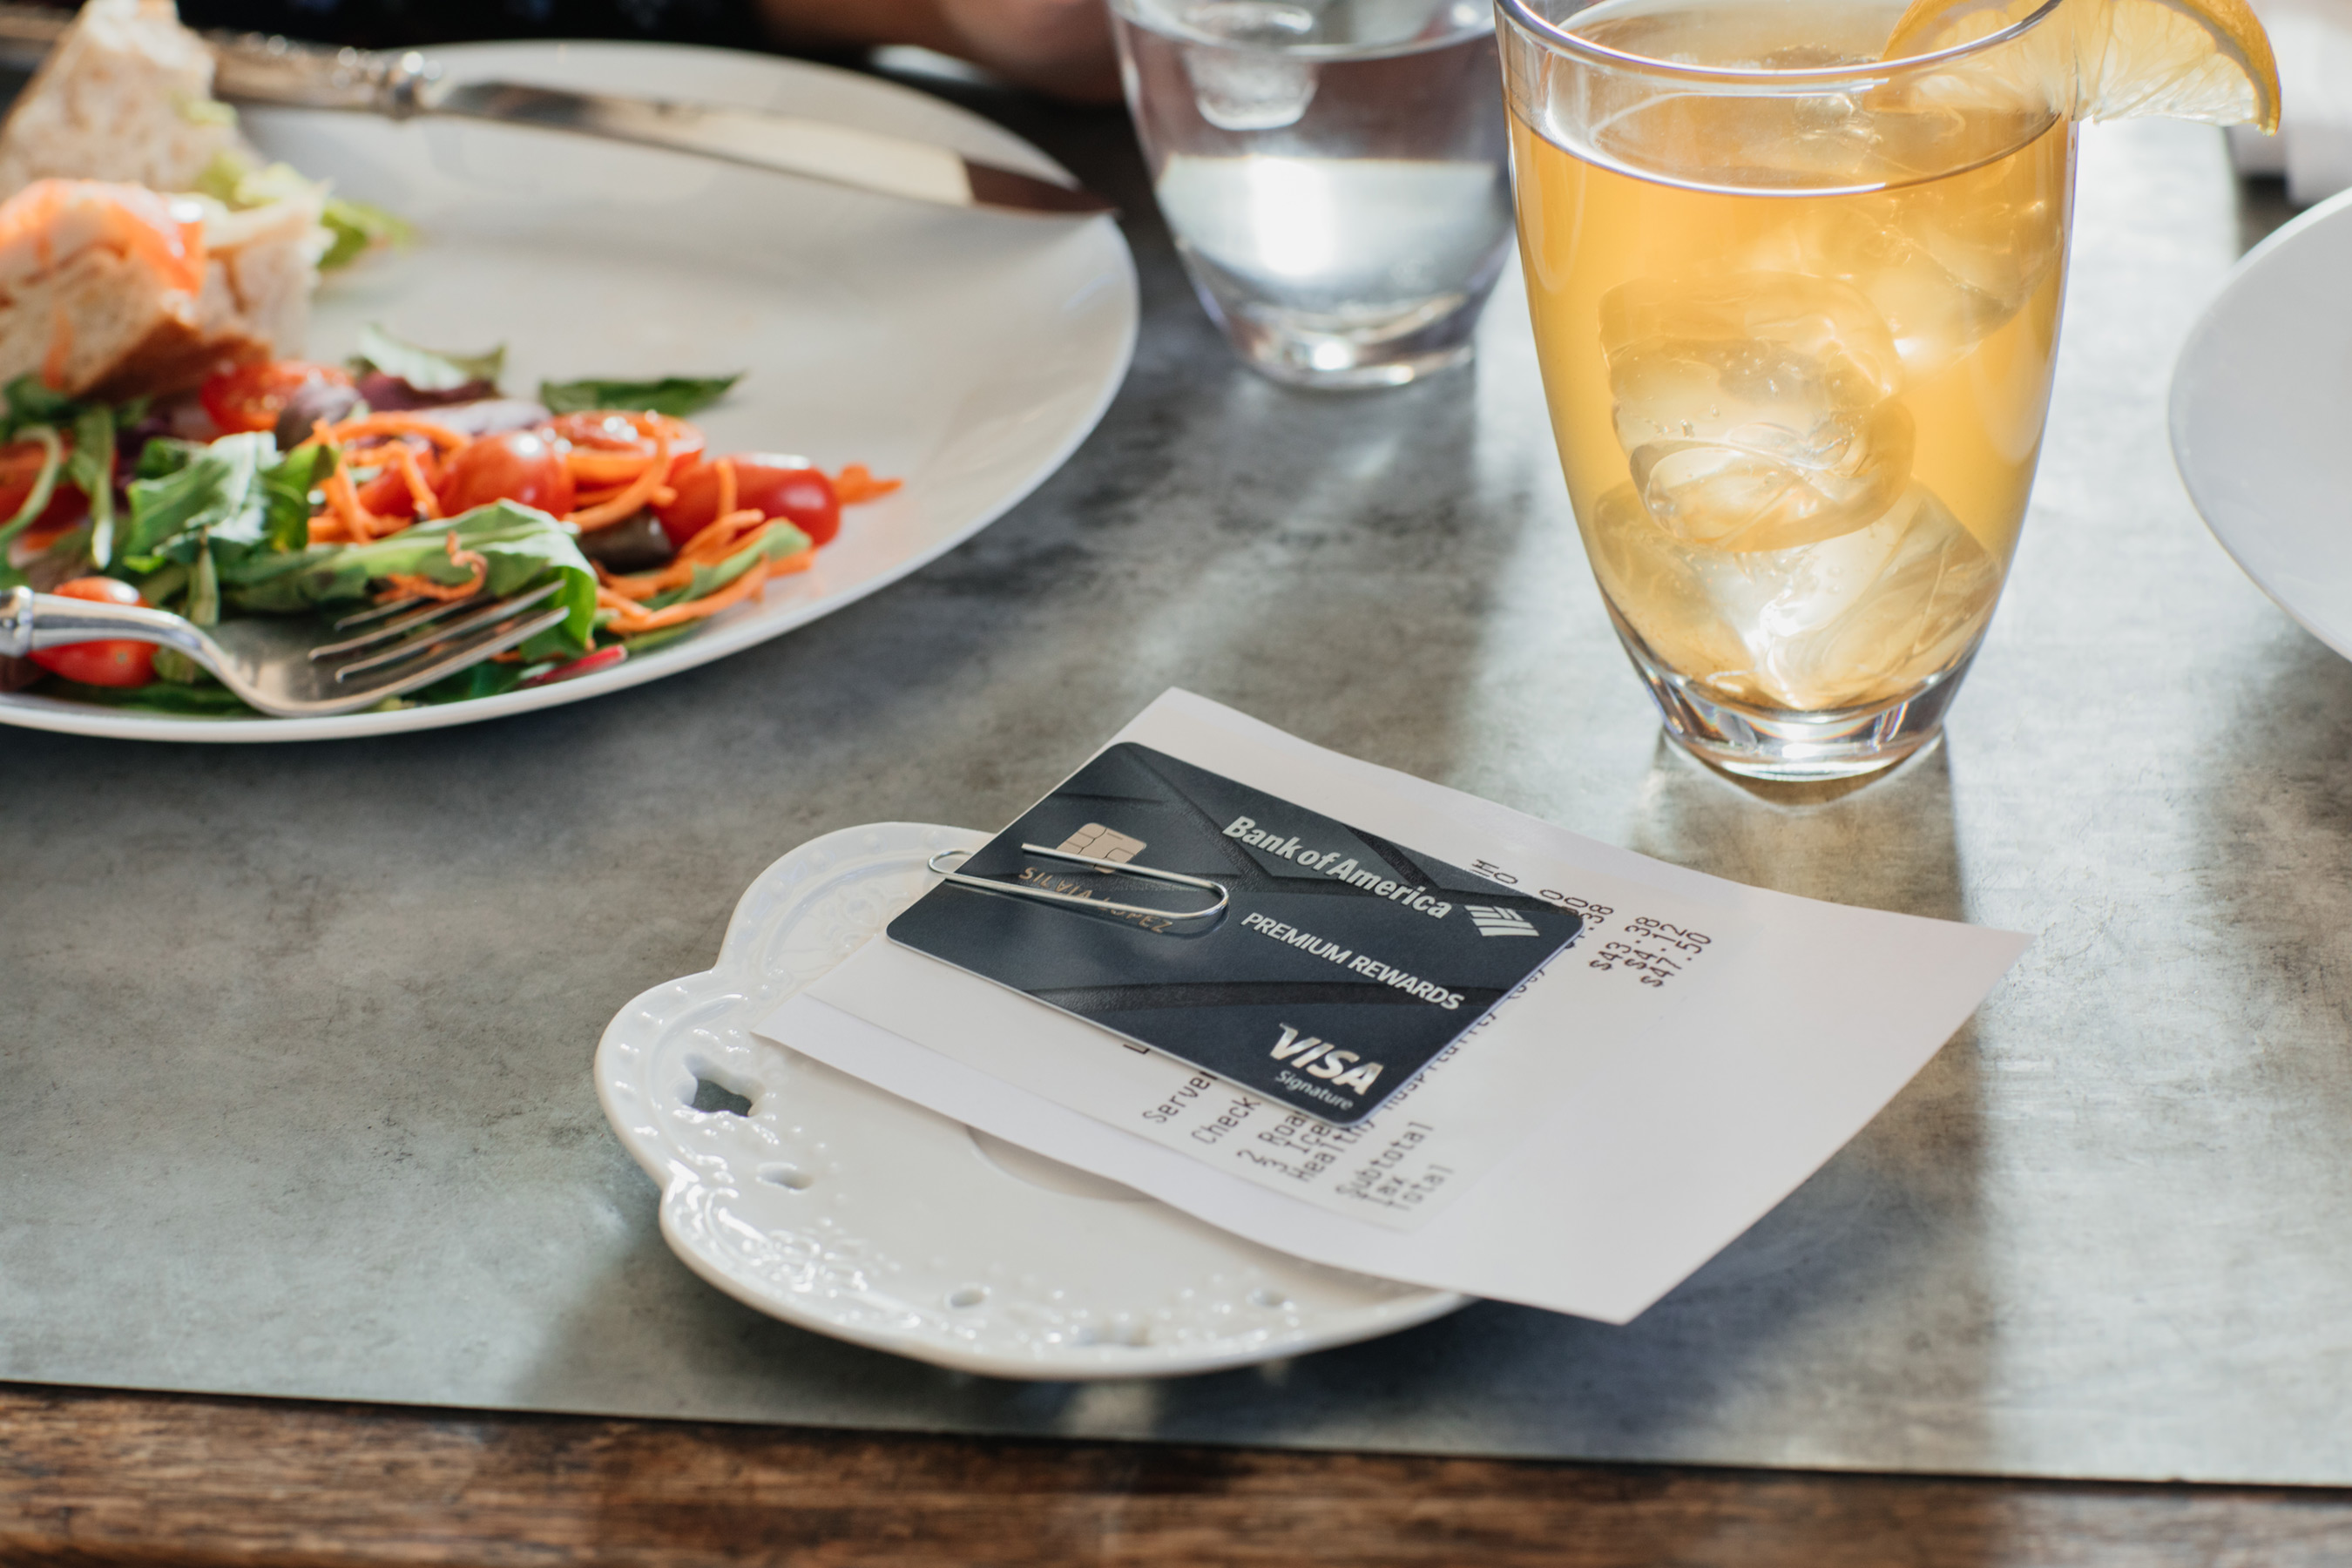 Bank_of_America_Credit_Card_Restaurant